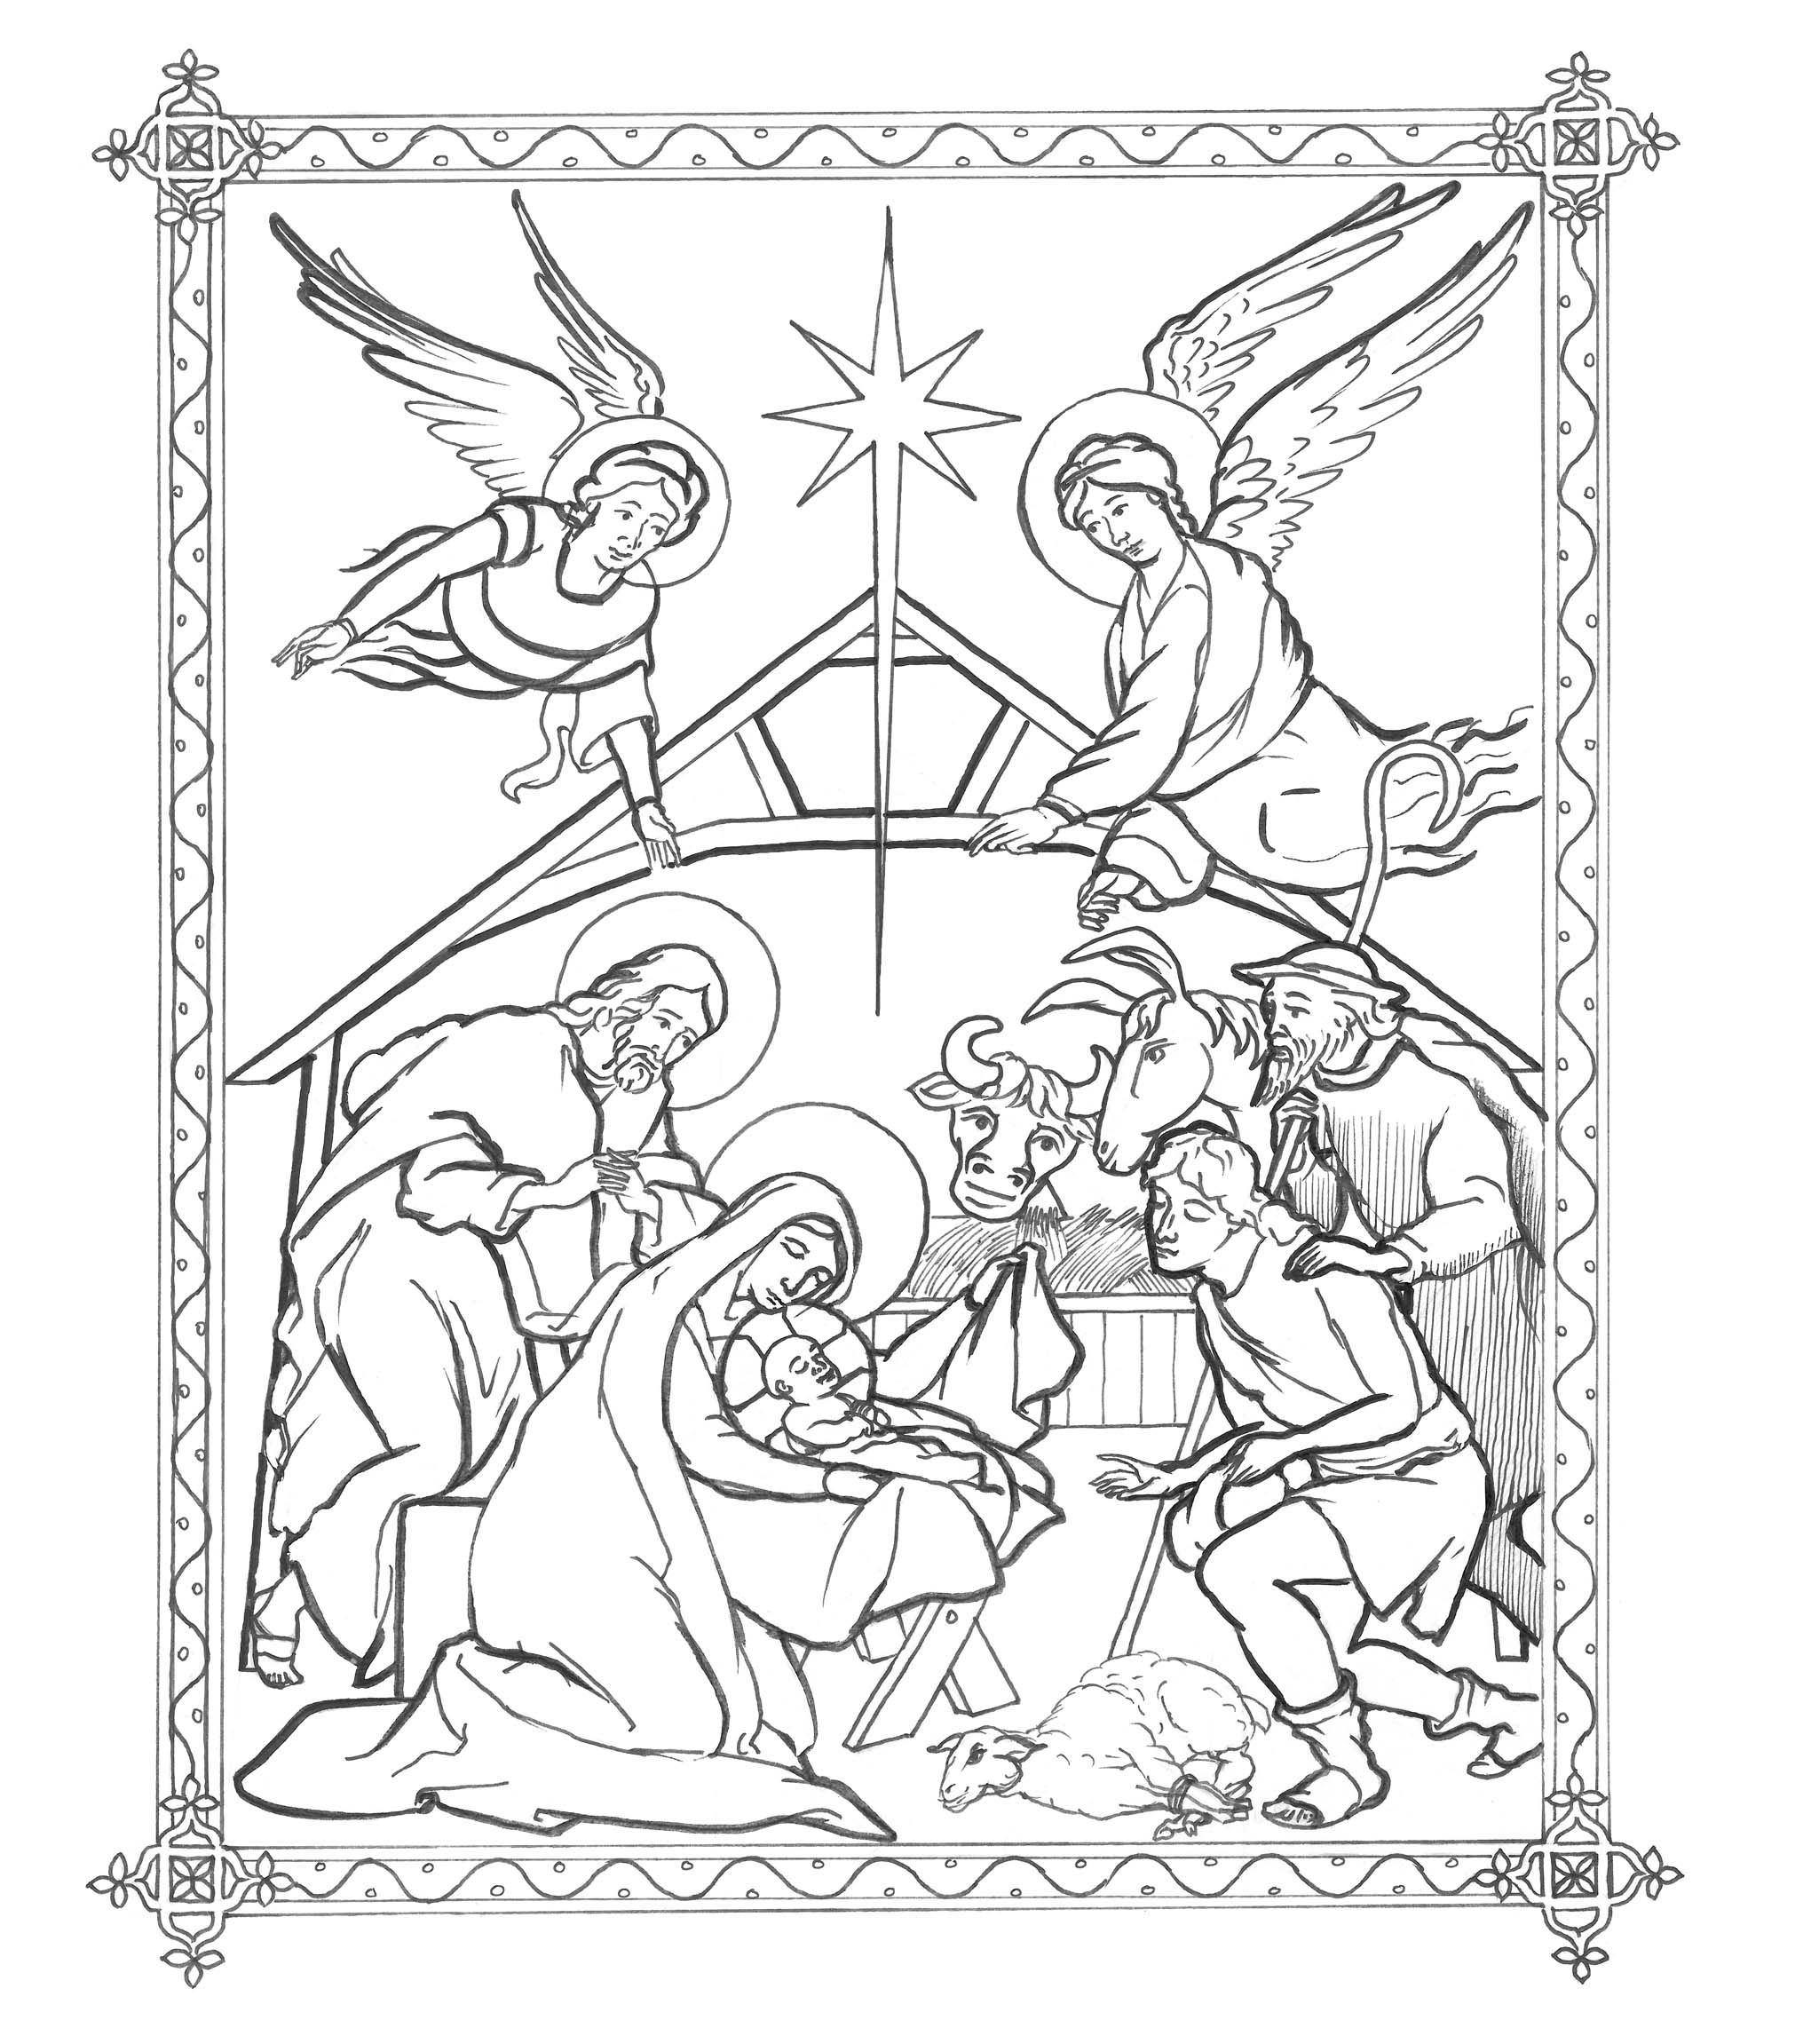 Nativity Jpg 2 040 2 302 Pixels Christmas Coloring Pages Coloring Pages Winter Coloring Pages